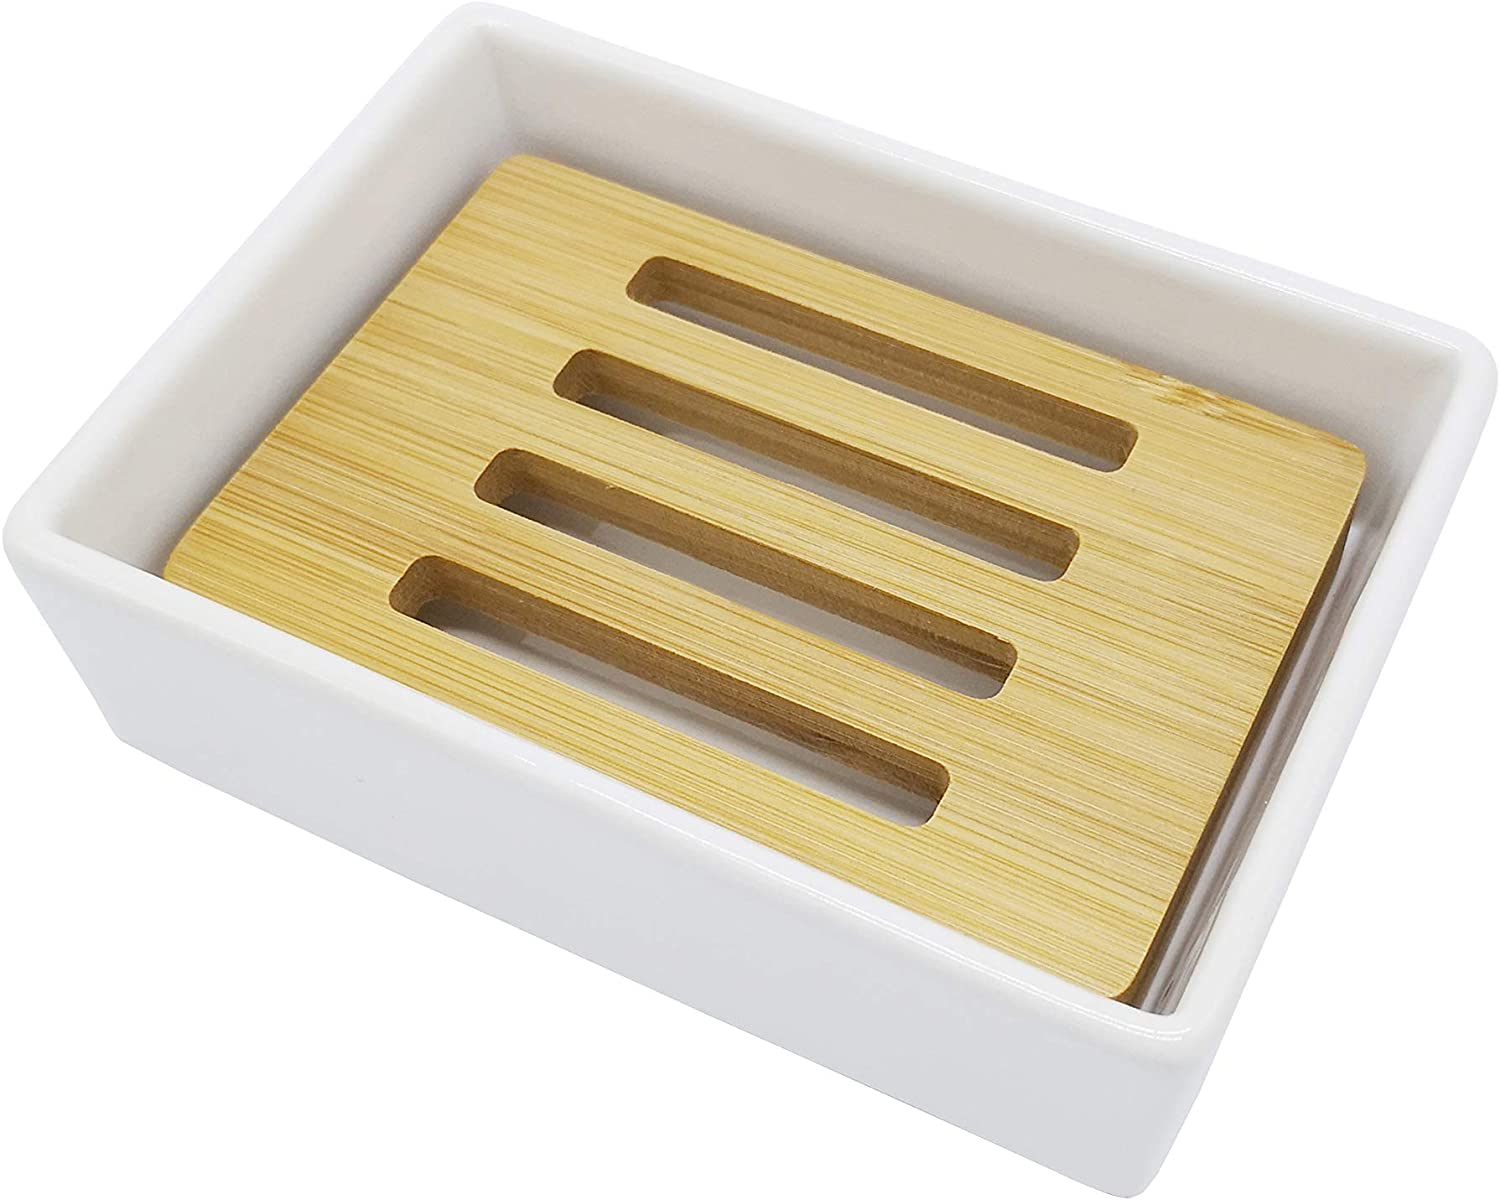 lofekea Ceramic Soap Dish Bamboo Bathroom Sh Limited time Outlet sale feature trial price for Holder and